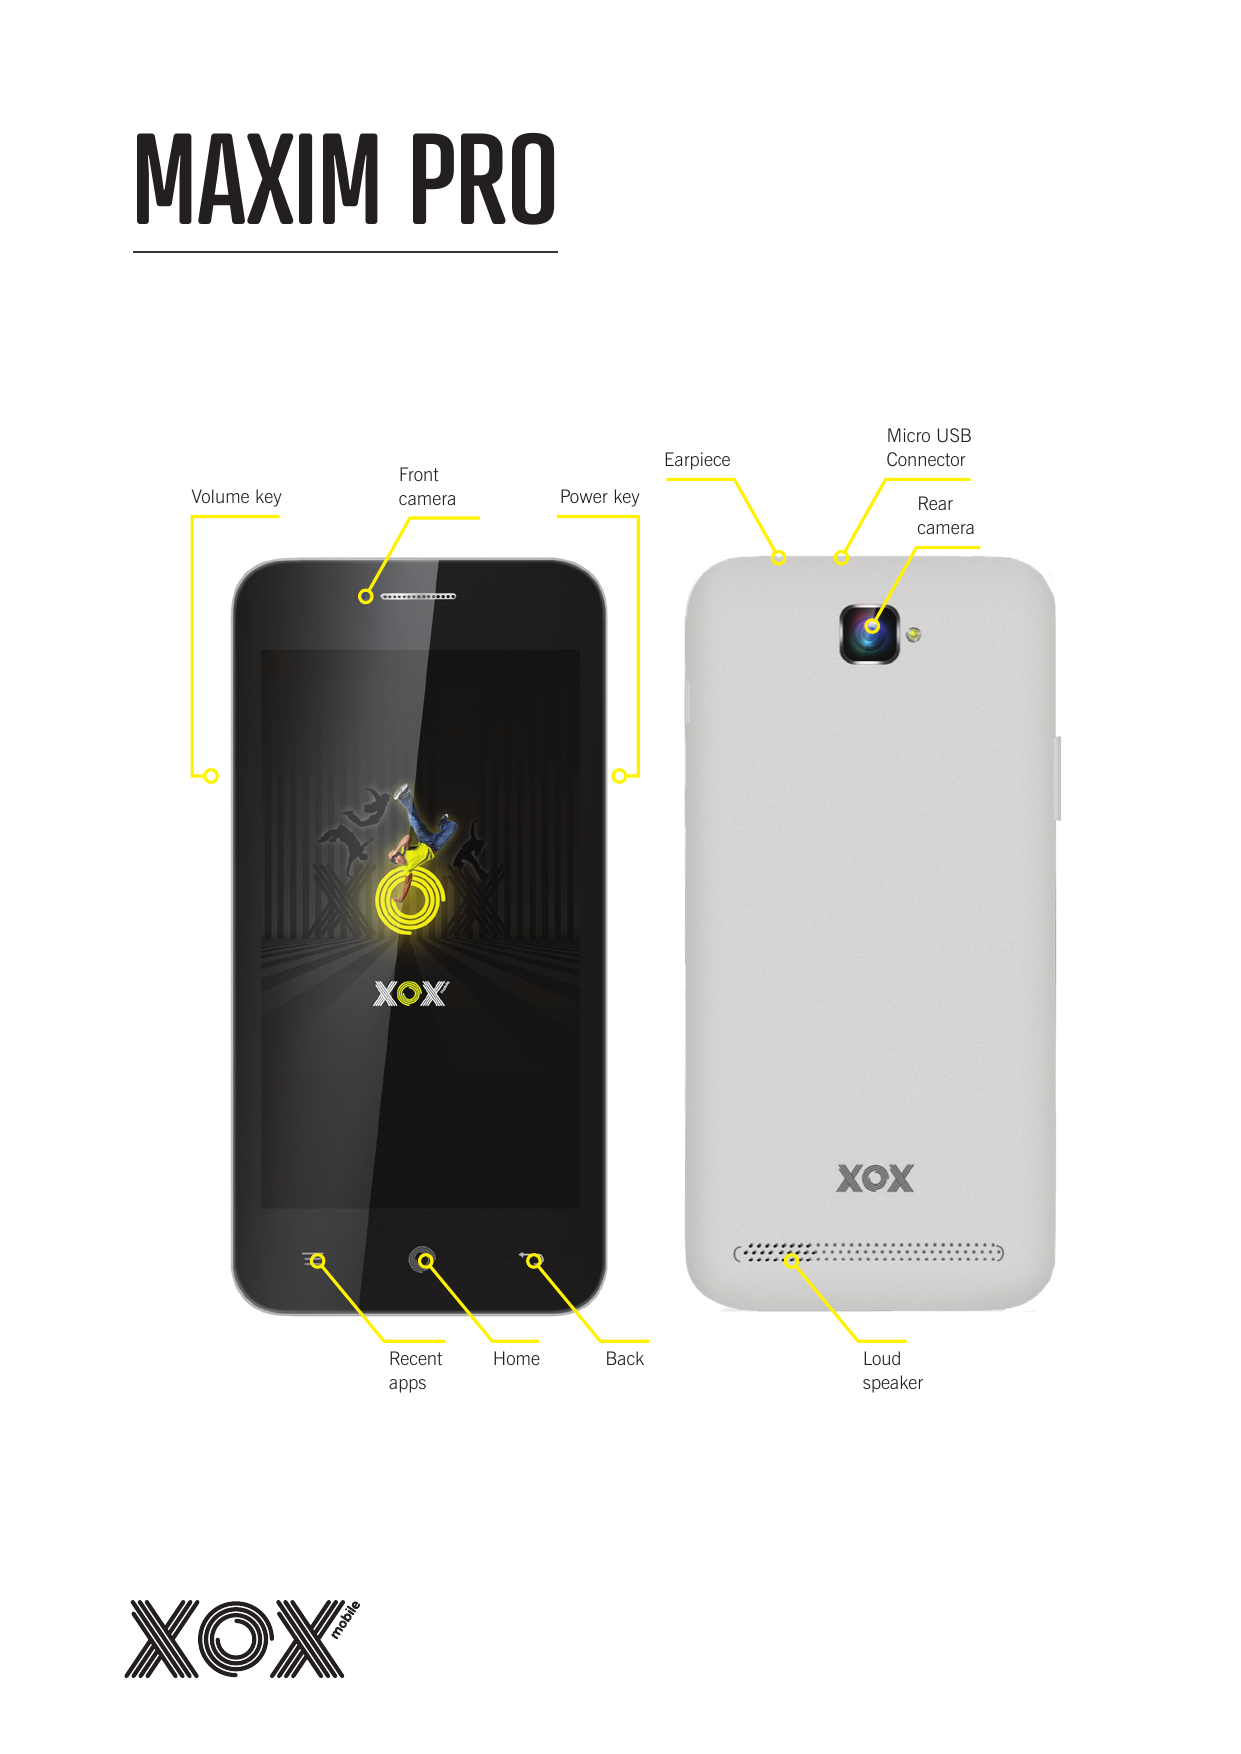 manual xox maxim pro android 4 4 device guides rh helpforsmartphone com Android User Accounts Android Text Message Icon